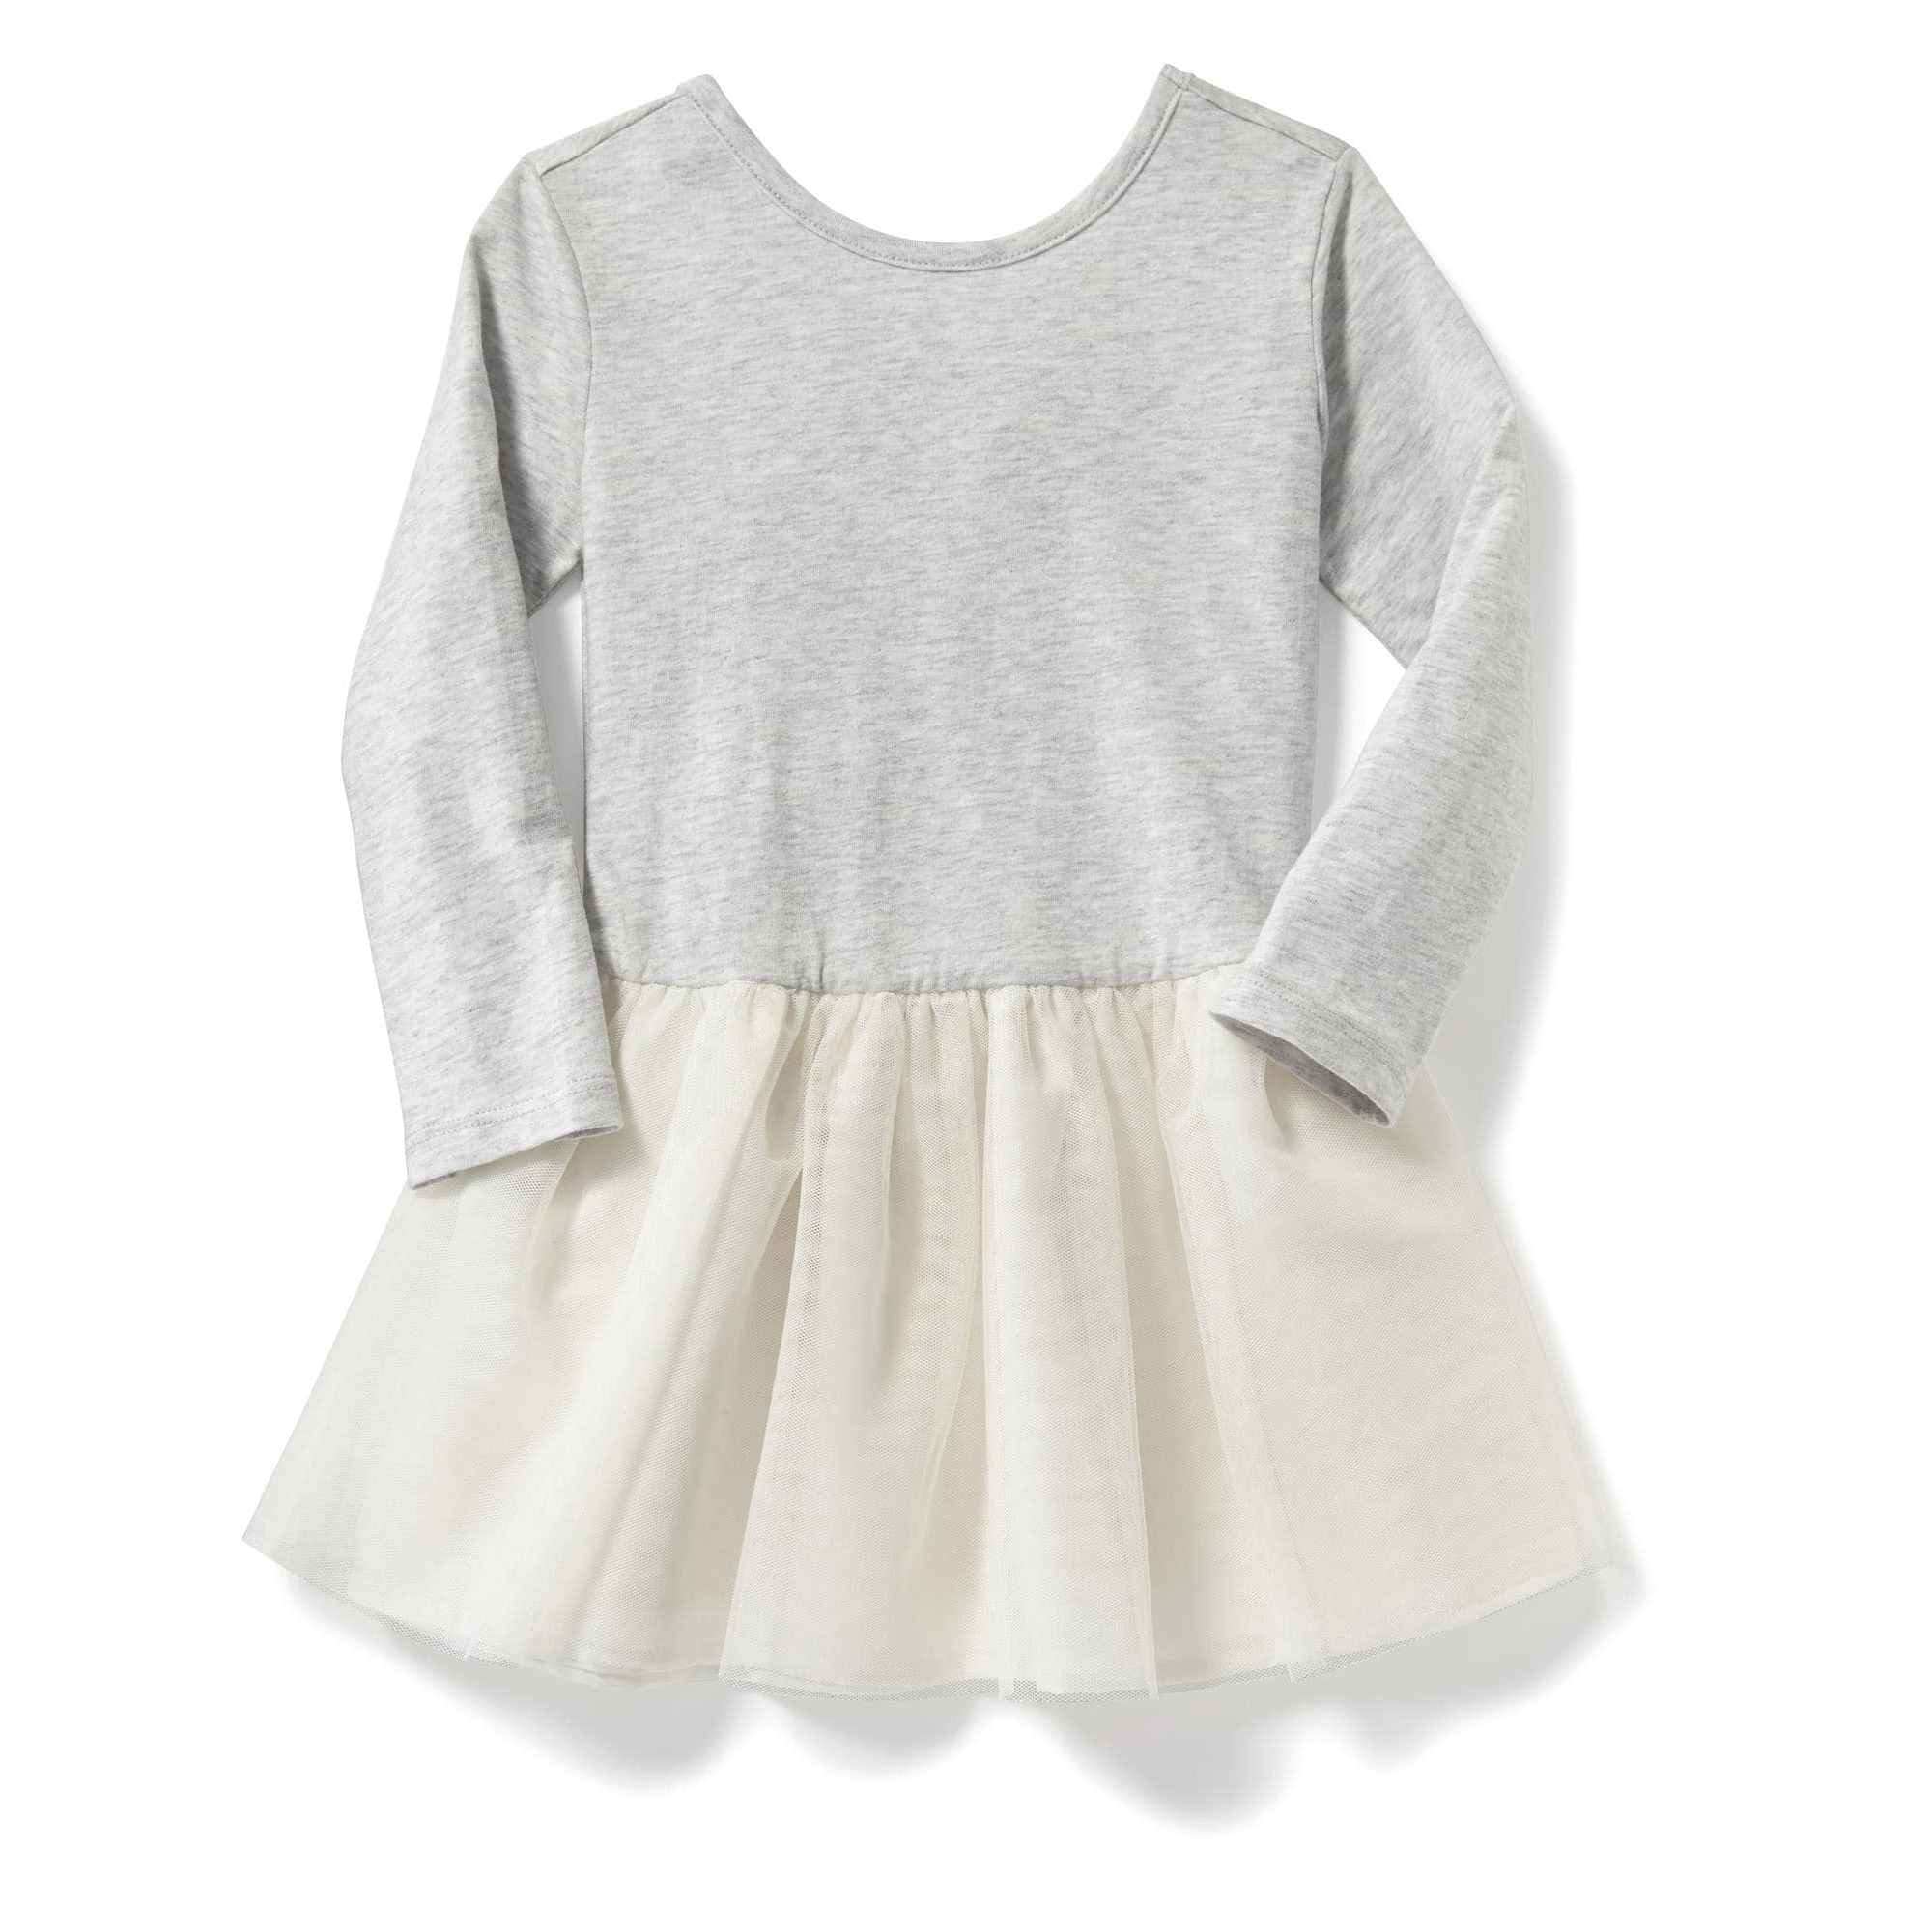 Old Navy tutu dress